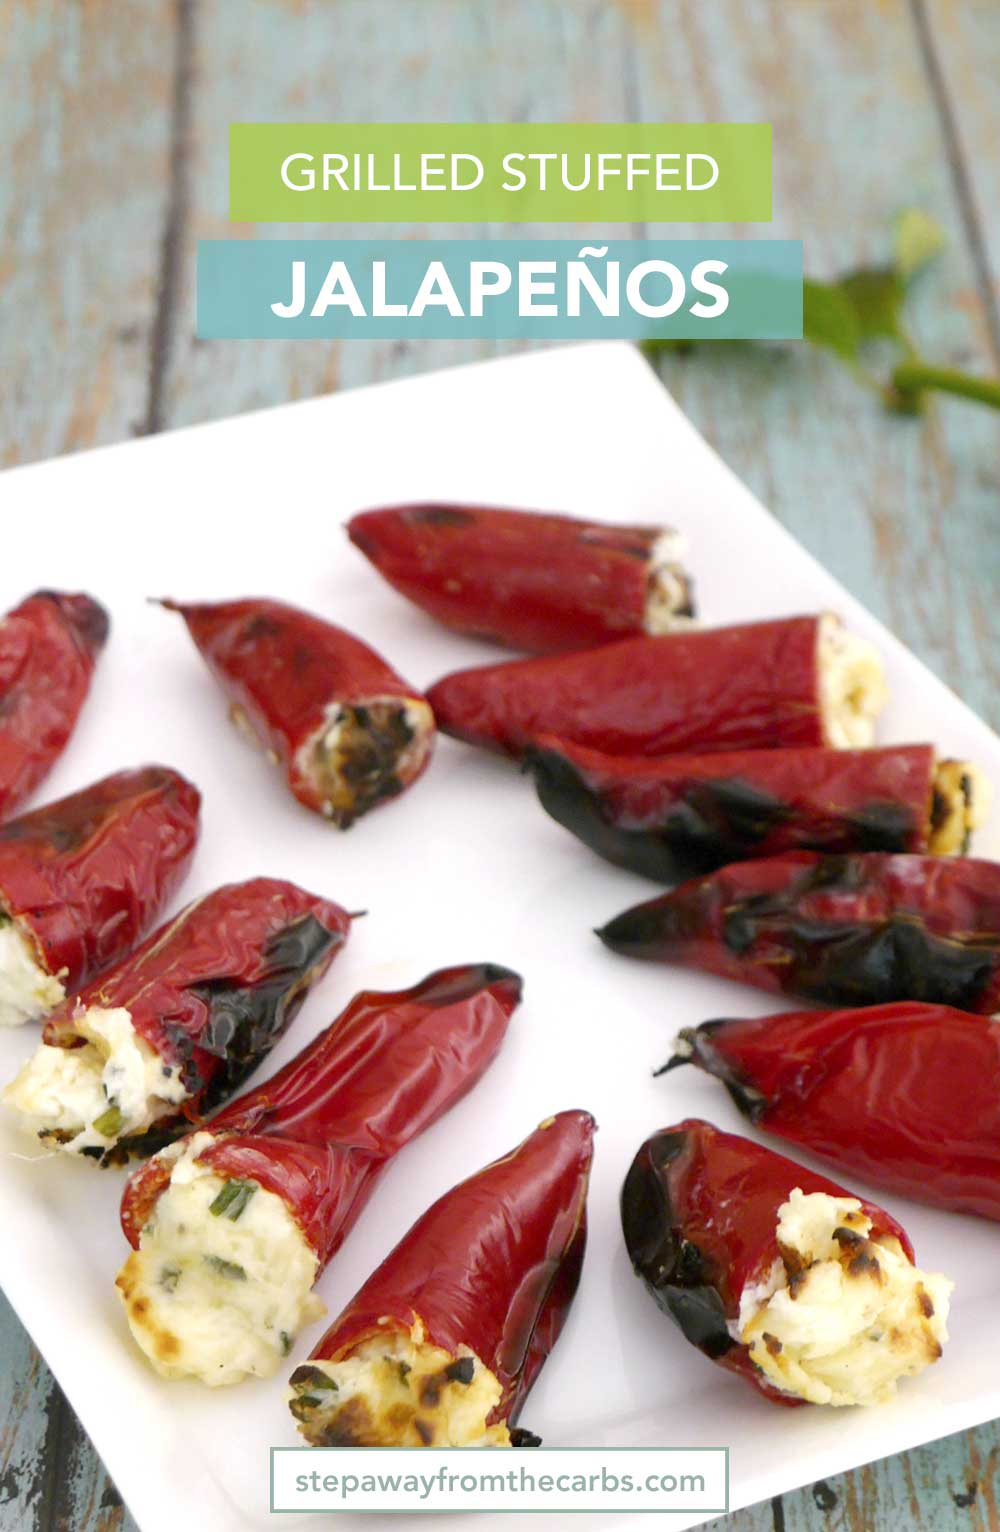 Grilled Stuffed Jalapeños - a low carb snack for the summer!